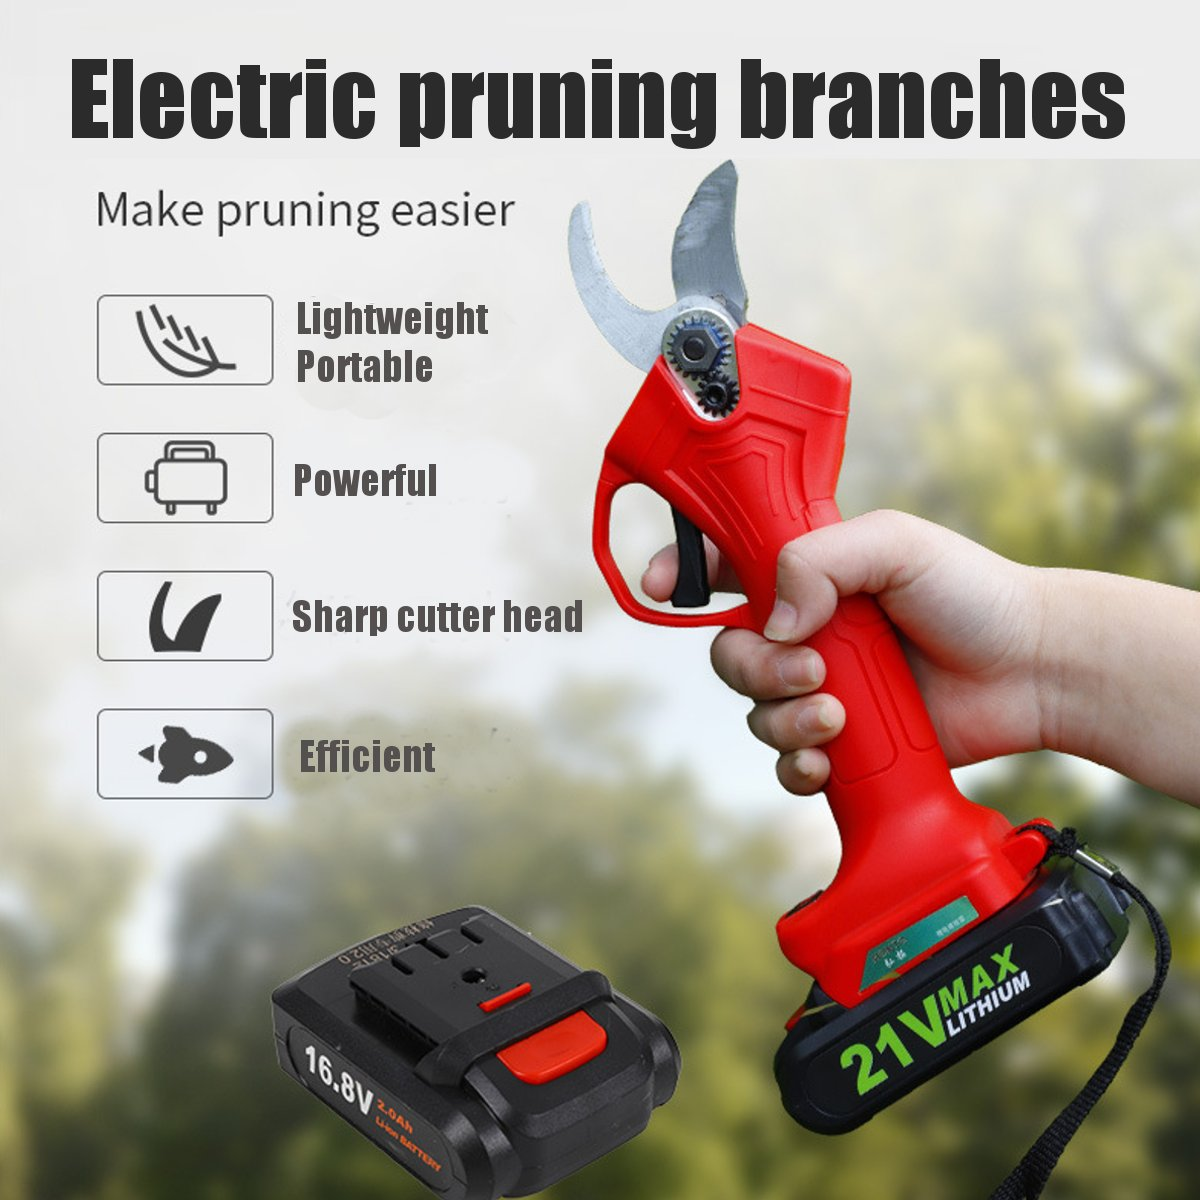 16.8V/21V Electric Garden Pruner Scissors Cordless Electric Pruning Shears Branch Cutter Electric Fruit Pruning Tool